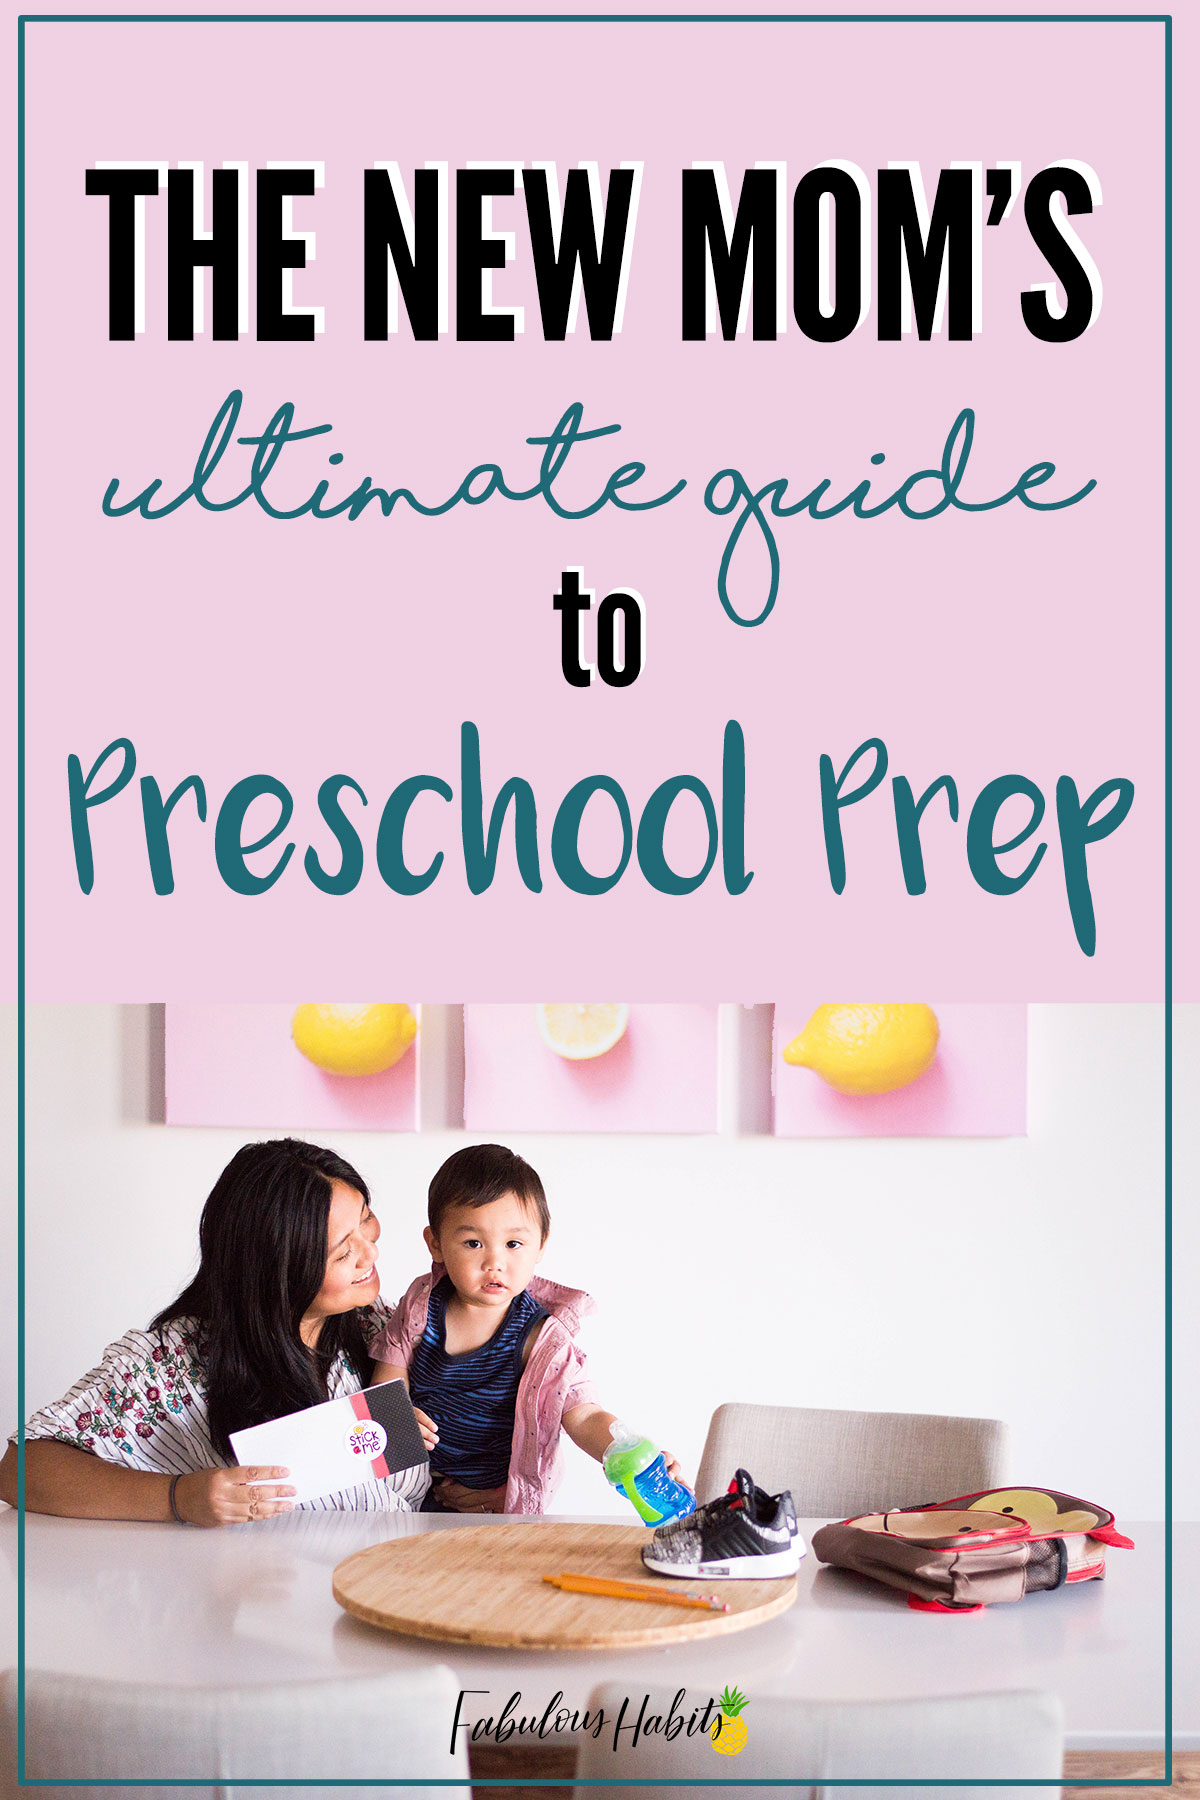 The new mom's ultimate guide to preschool prep. It's all about the preparations - you totally got this, mama! #preschoolprep